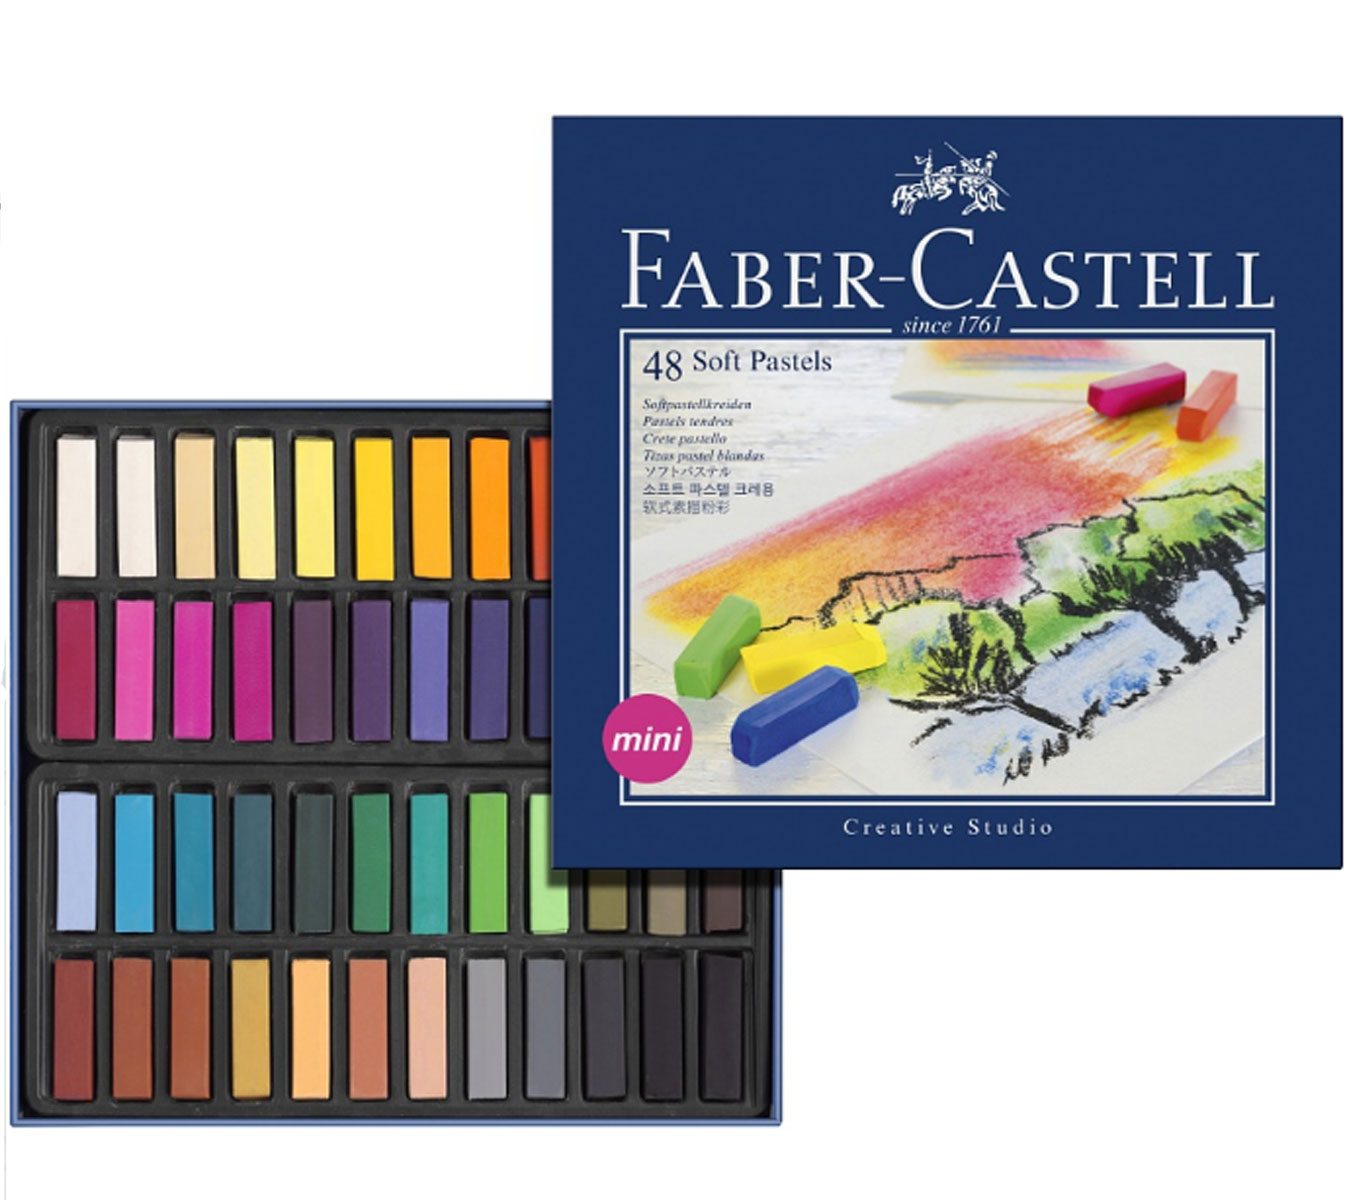 Мягкие мини-мелки Faber-Castell Studio Quality Soft Pastels, 48 шт godox qs 400d professional studio flash soft light for photography